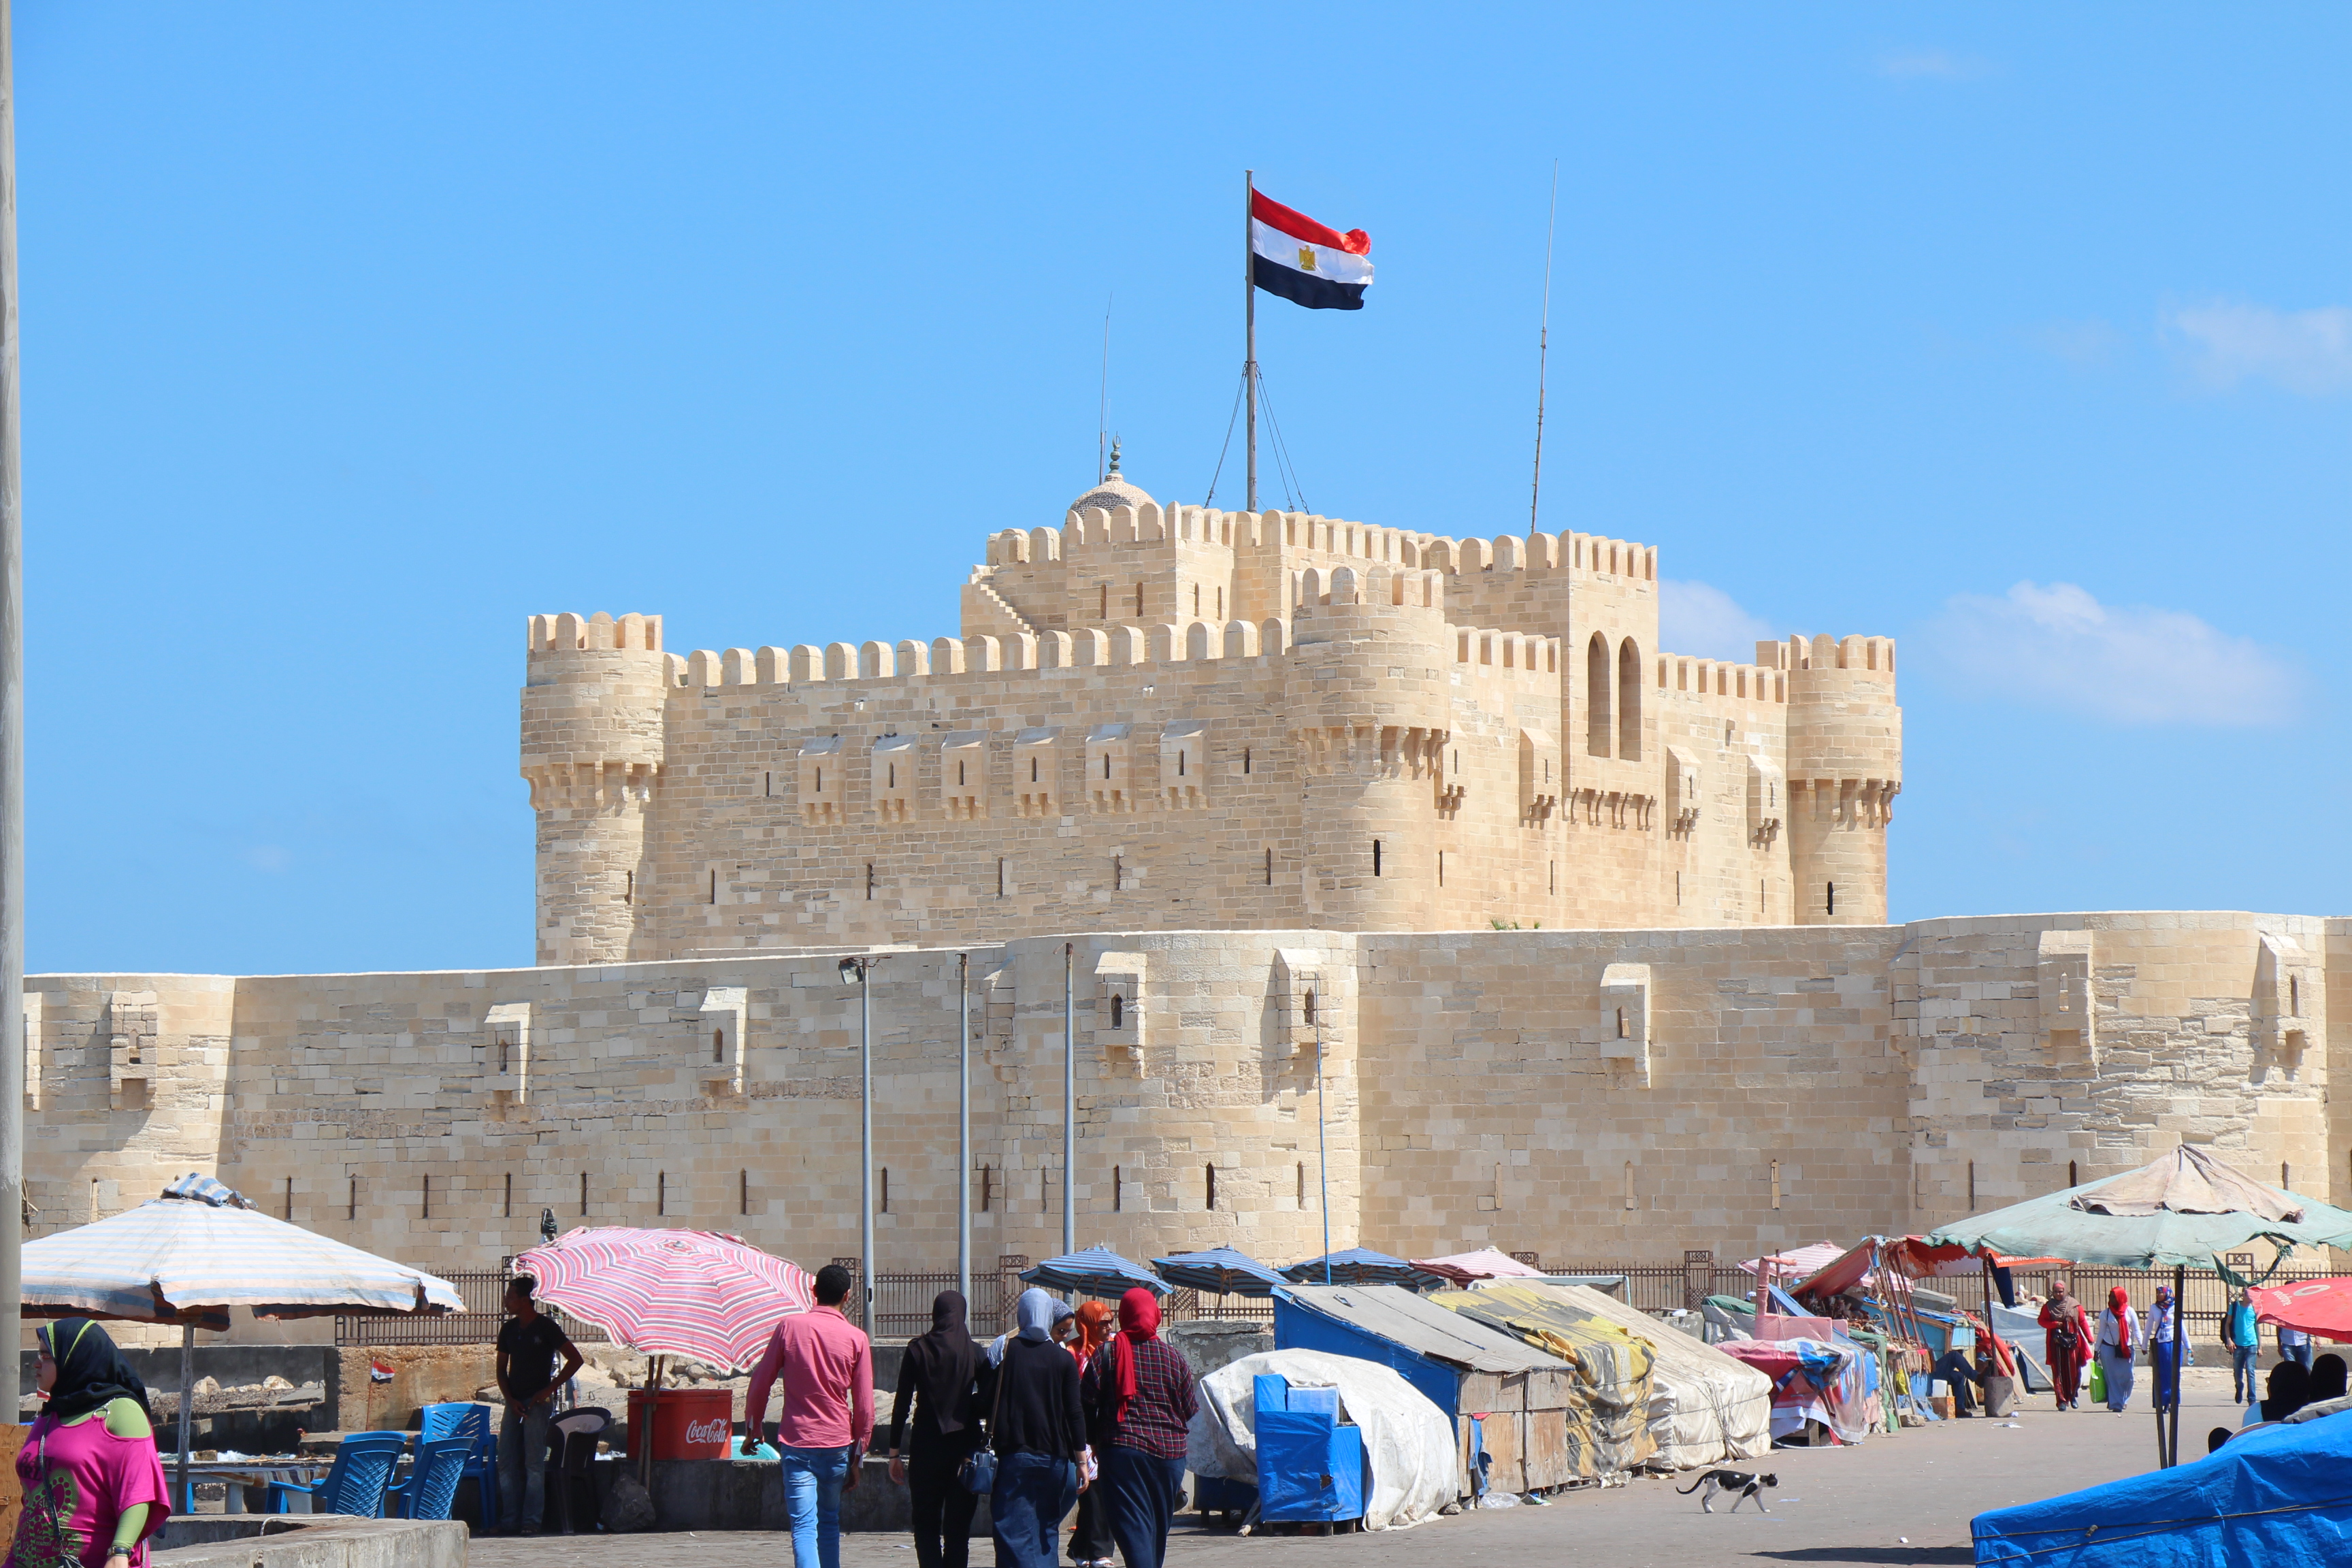 Egypt Tour to Cairo - Alexandria - Luxor West & East Bank 7 Days with flight 6